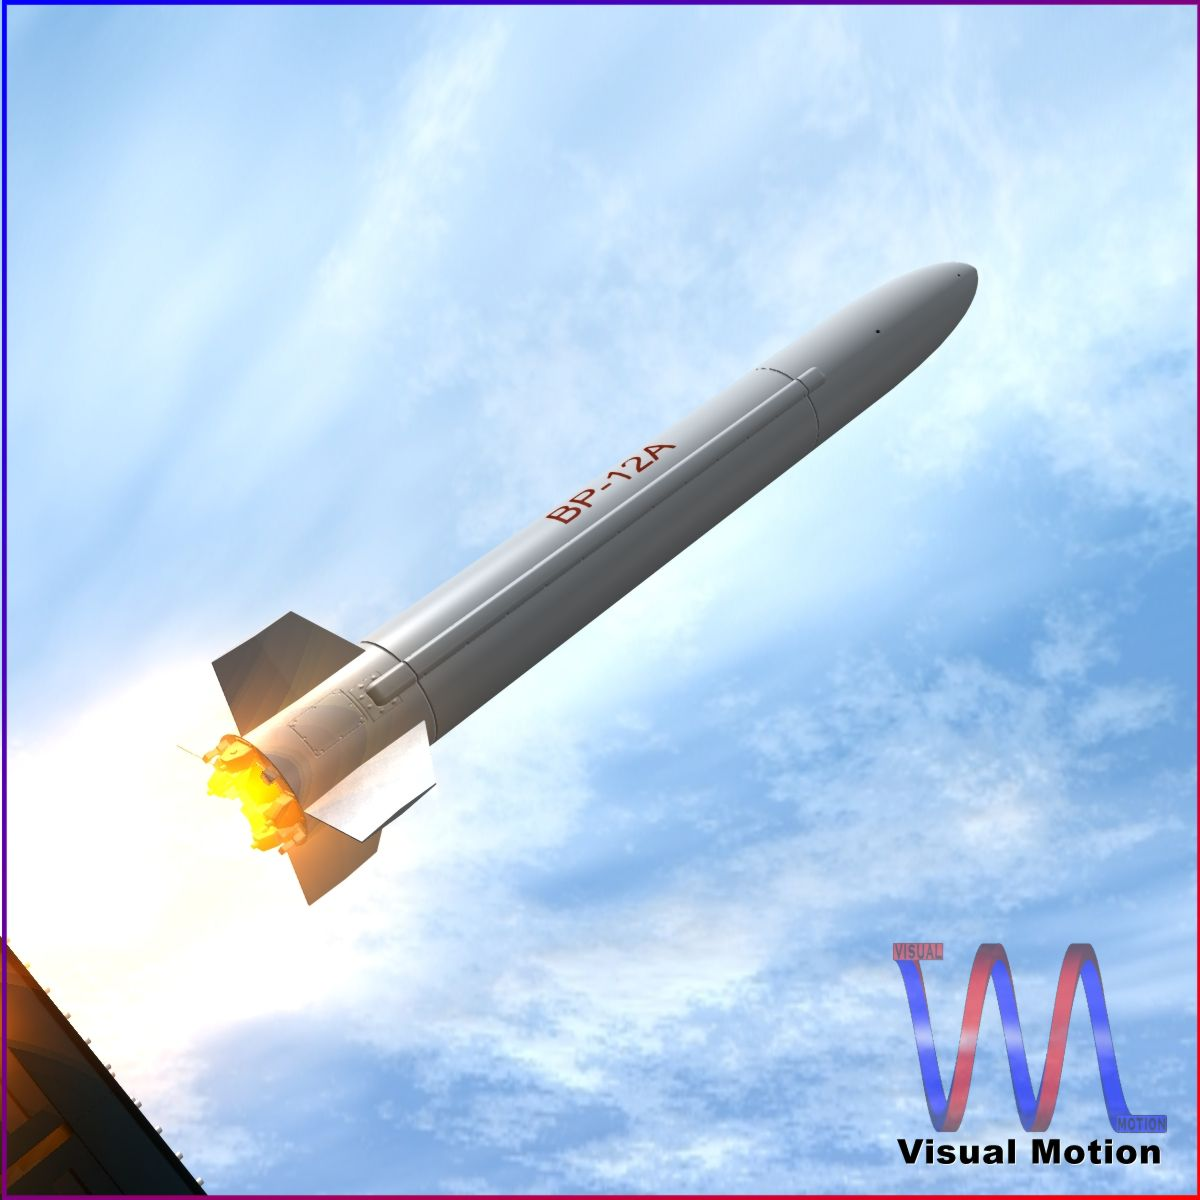 bp-12a missile 3d model 3ds dxf fbx blend cob dae x obj 217507